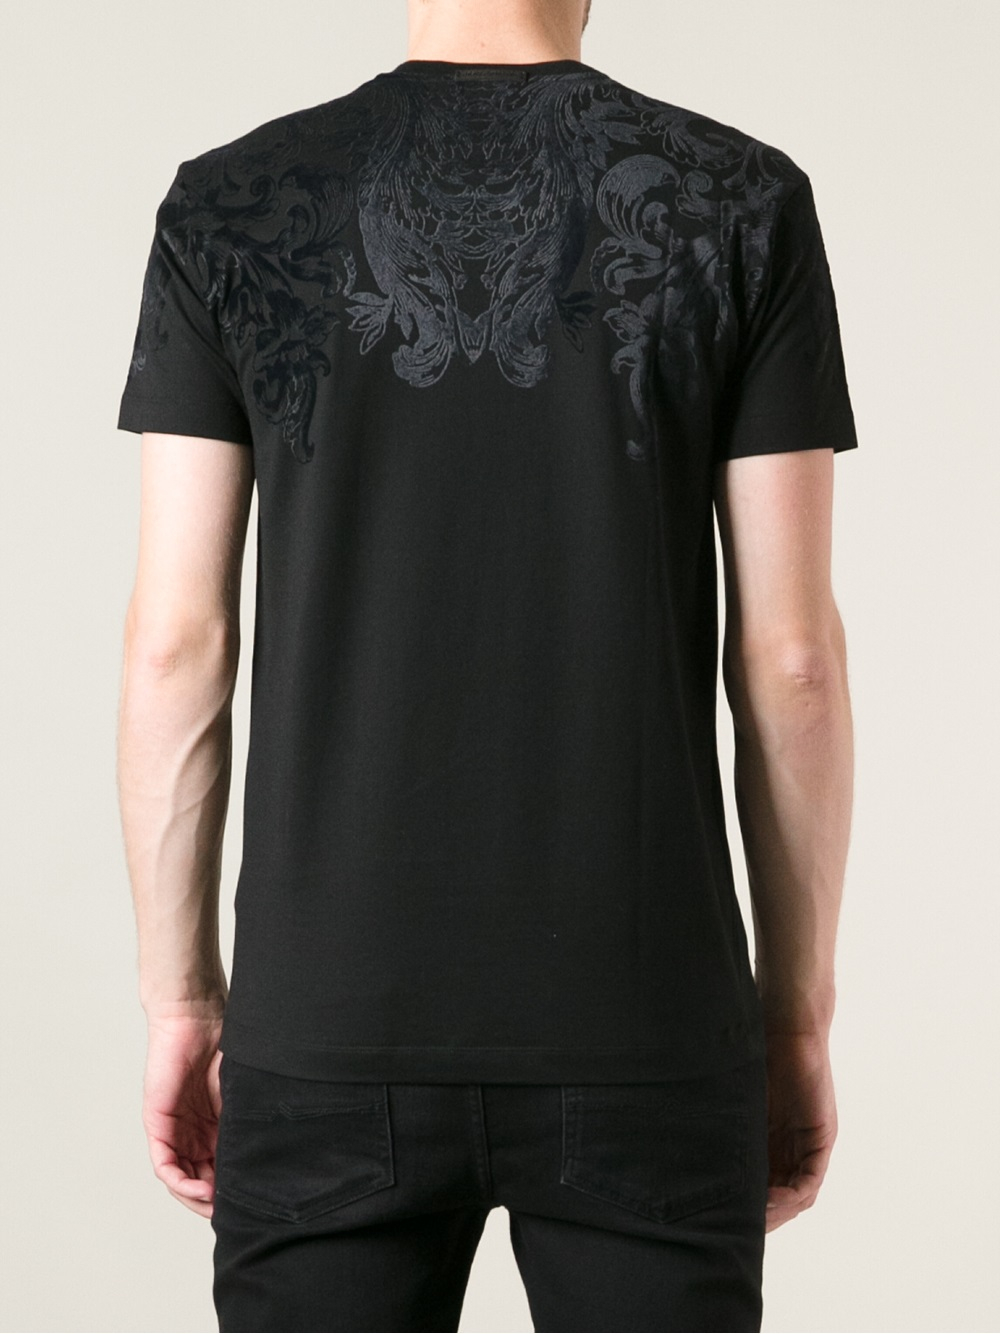 Dolce gabbana floral printed t shirt in black for men lyst for Dolce and gabbana printed t shirts